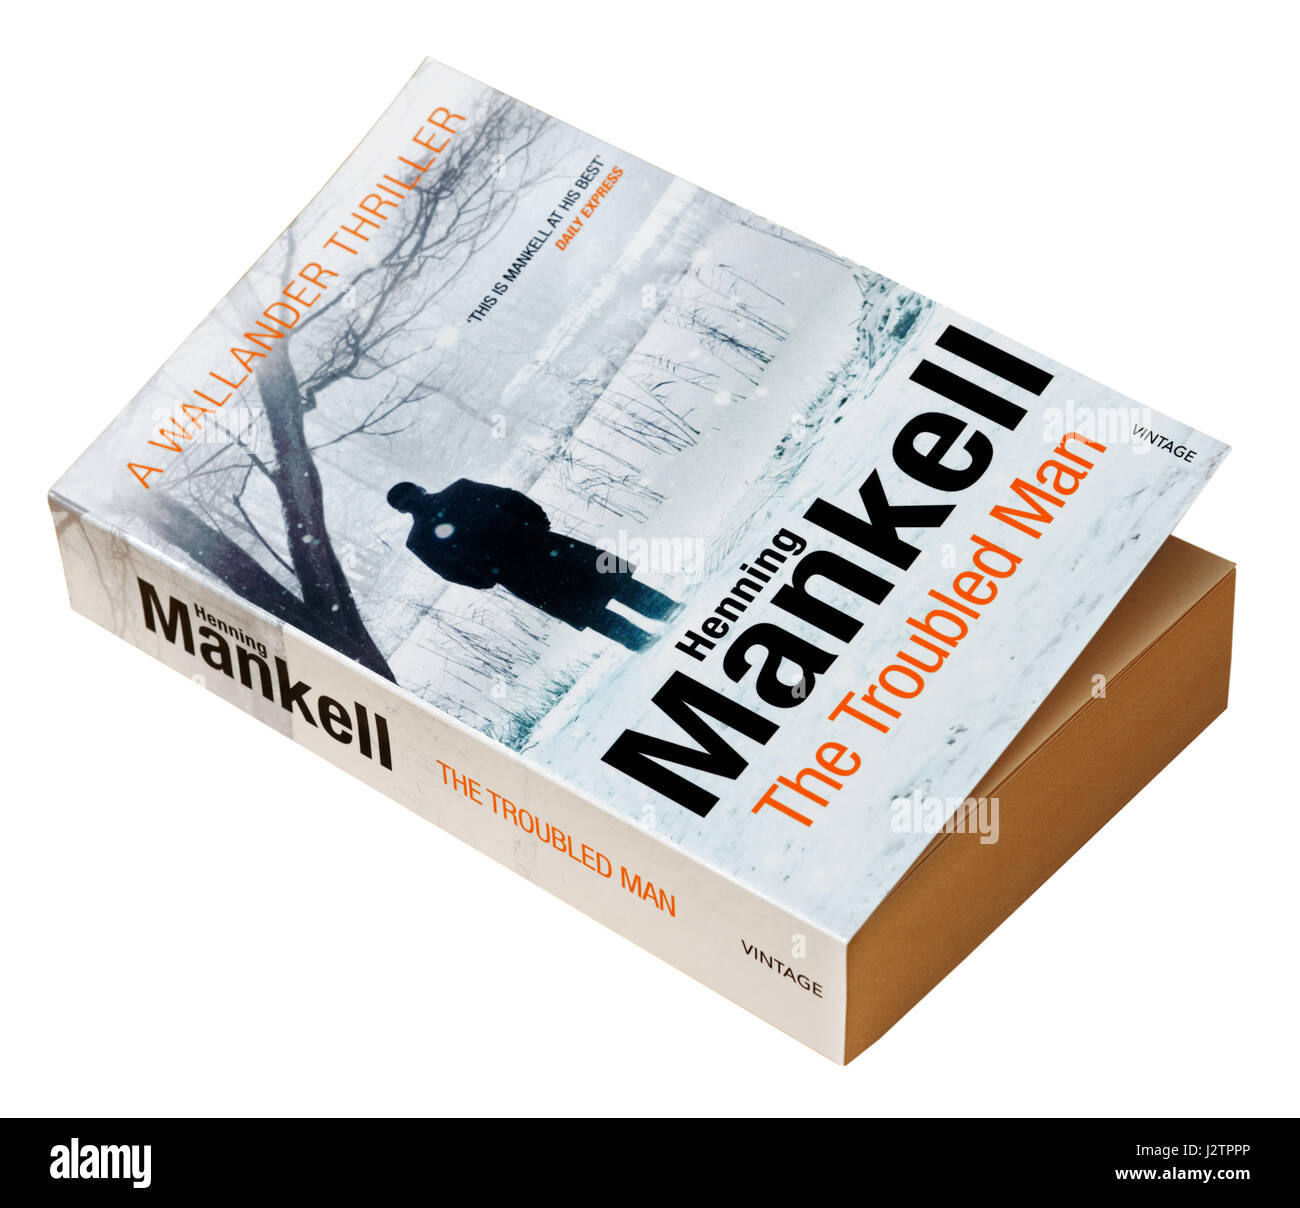 The Troubled Man  by Henning Mankell - A detective Wallander story - Stock Image